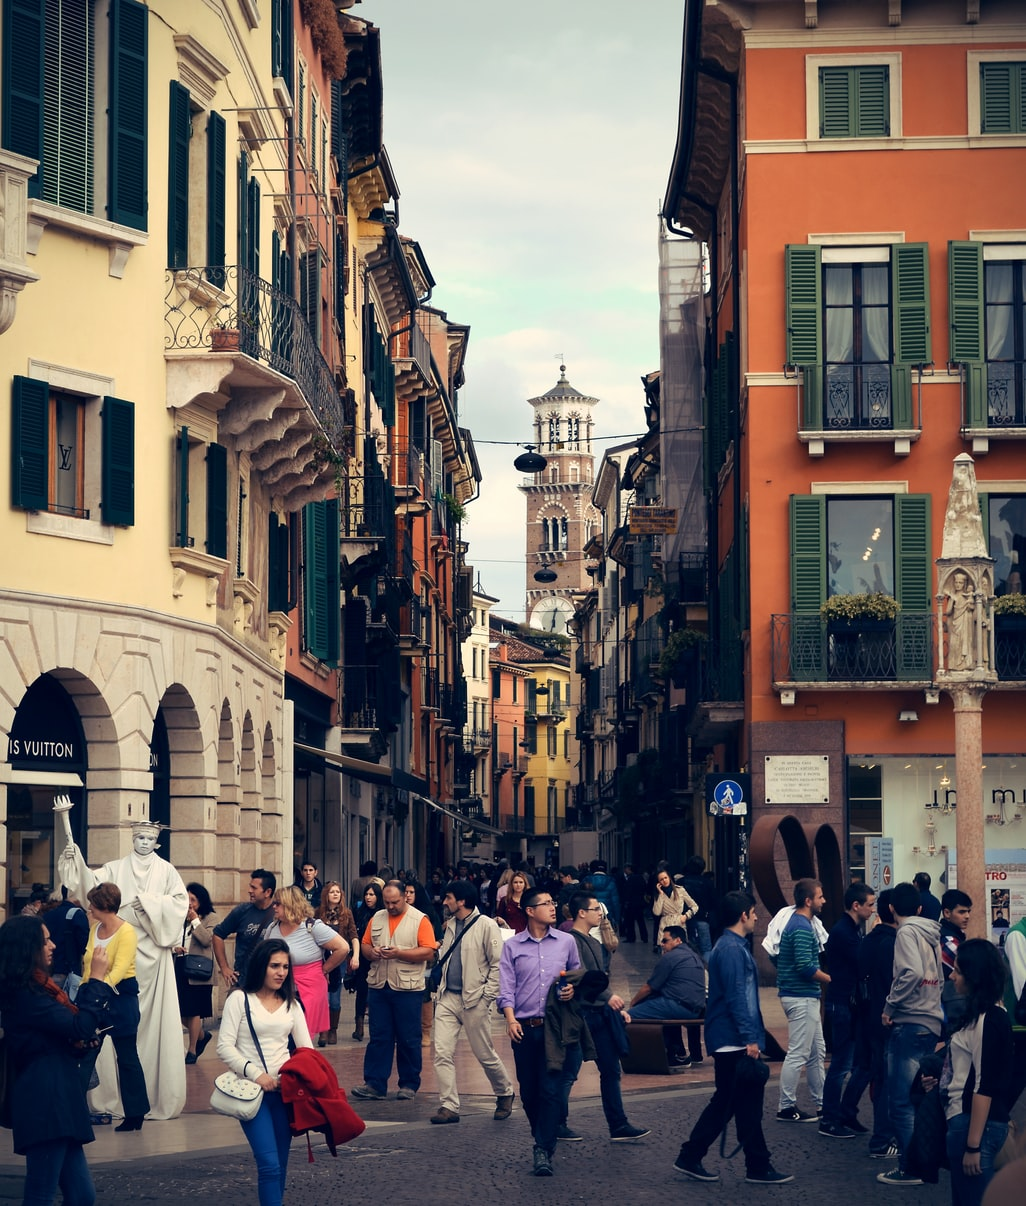 an alleyway with people in Verona, Italy